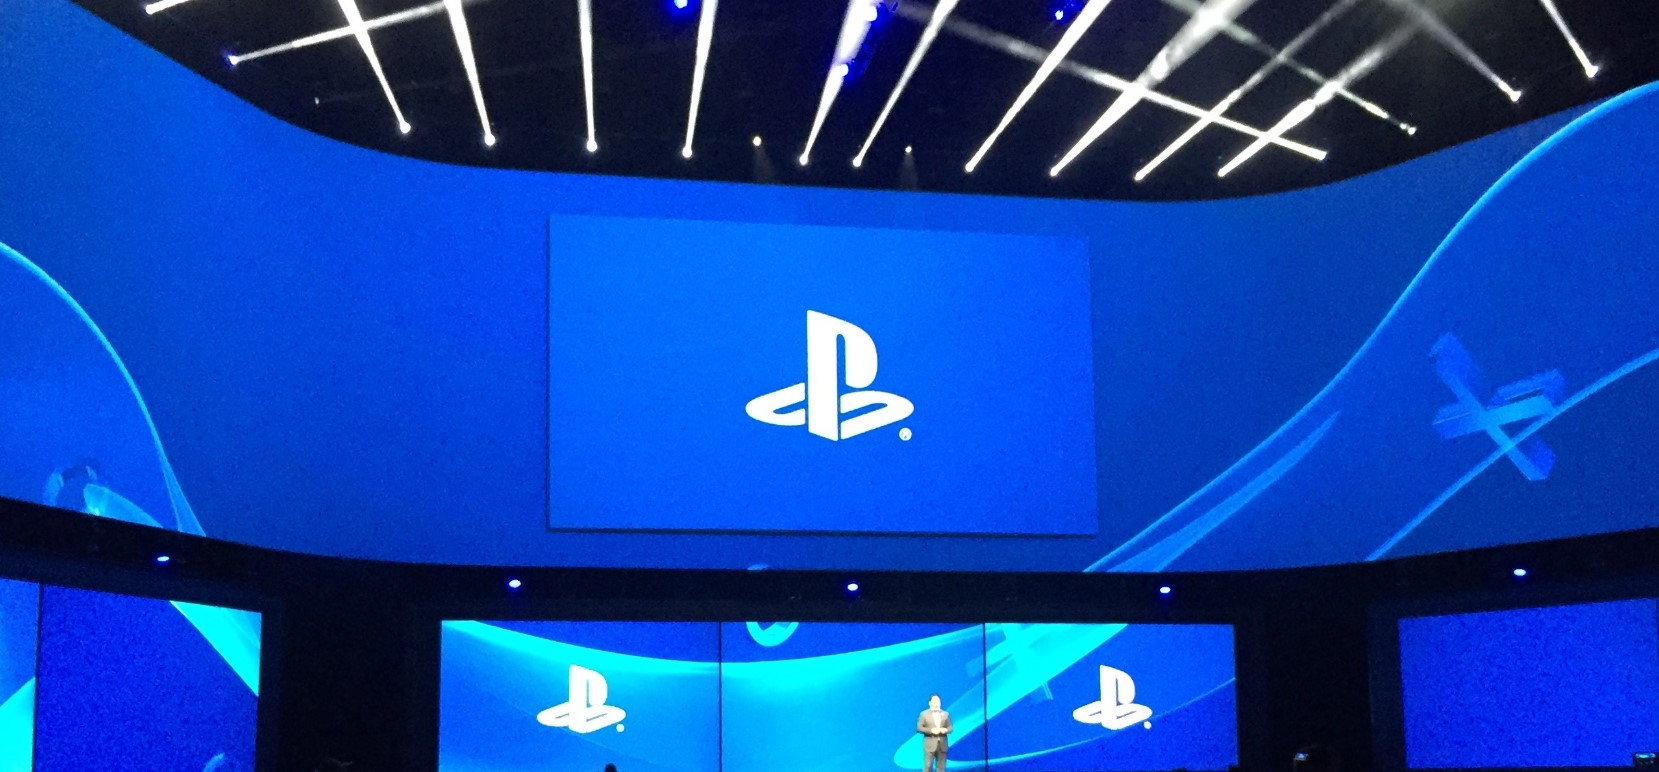 PS5 price, Reports suggests the PS5 price may breach $450 due to increased manufacturing costs, Gadget Pilipinas, Gadget Pilipinas